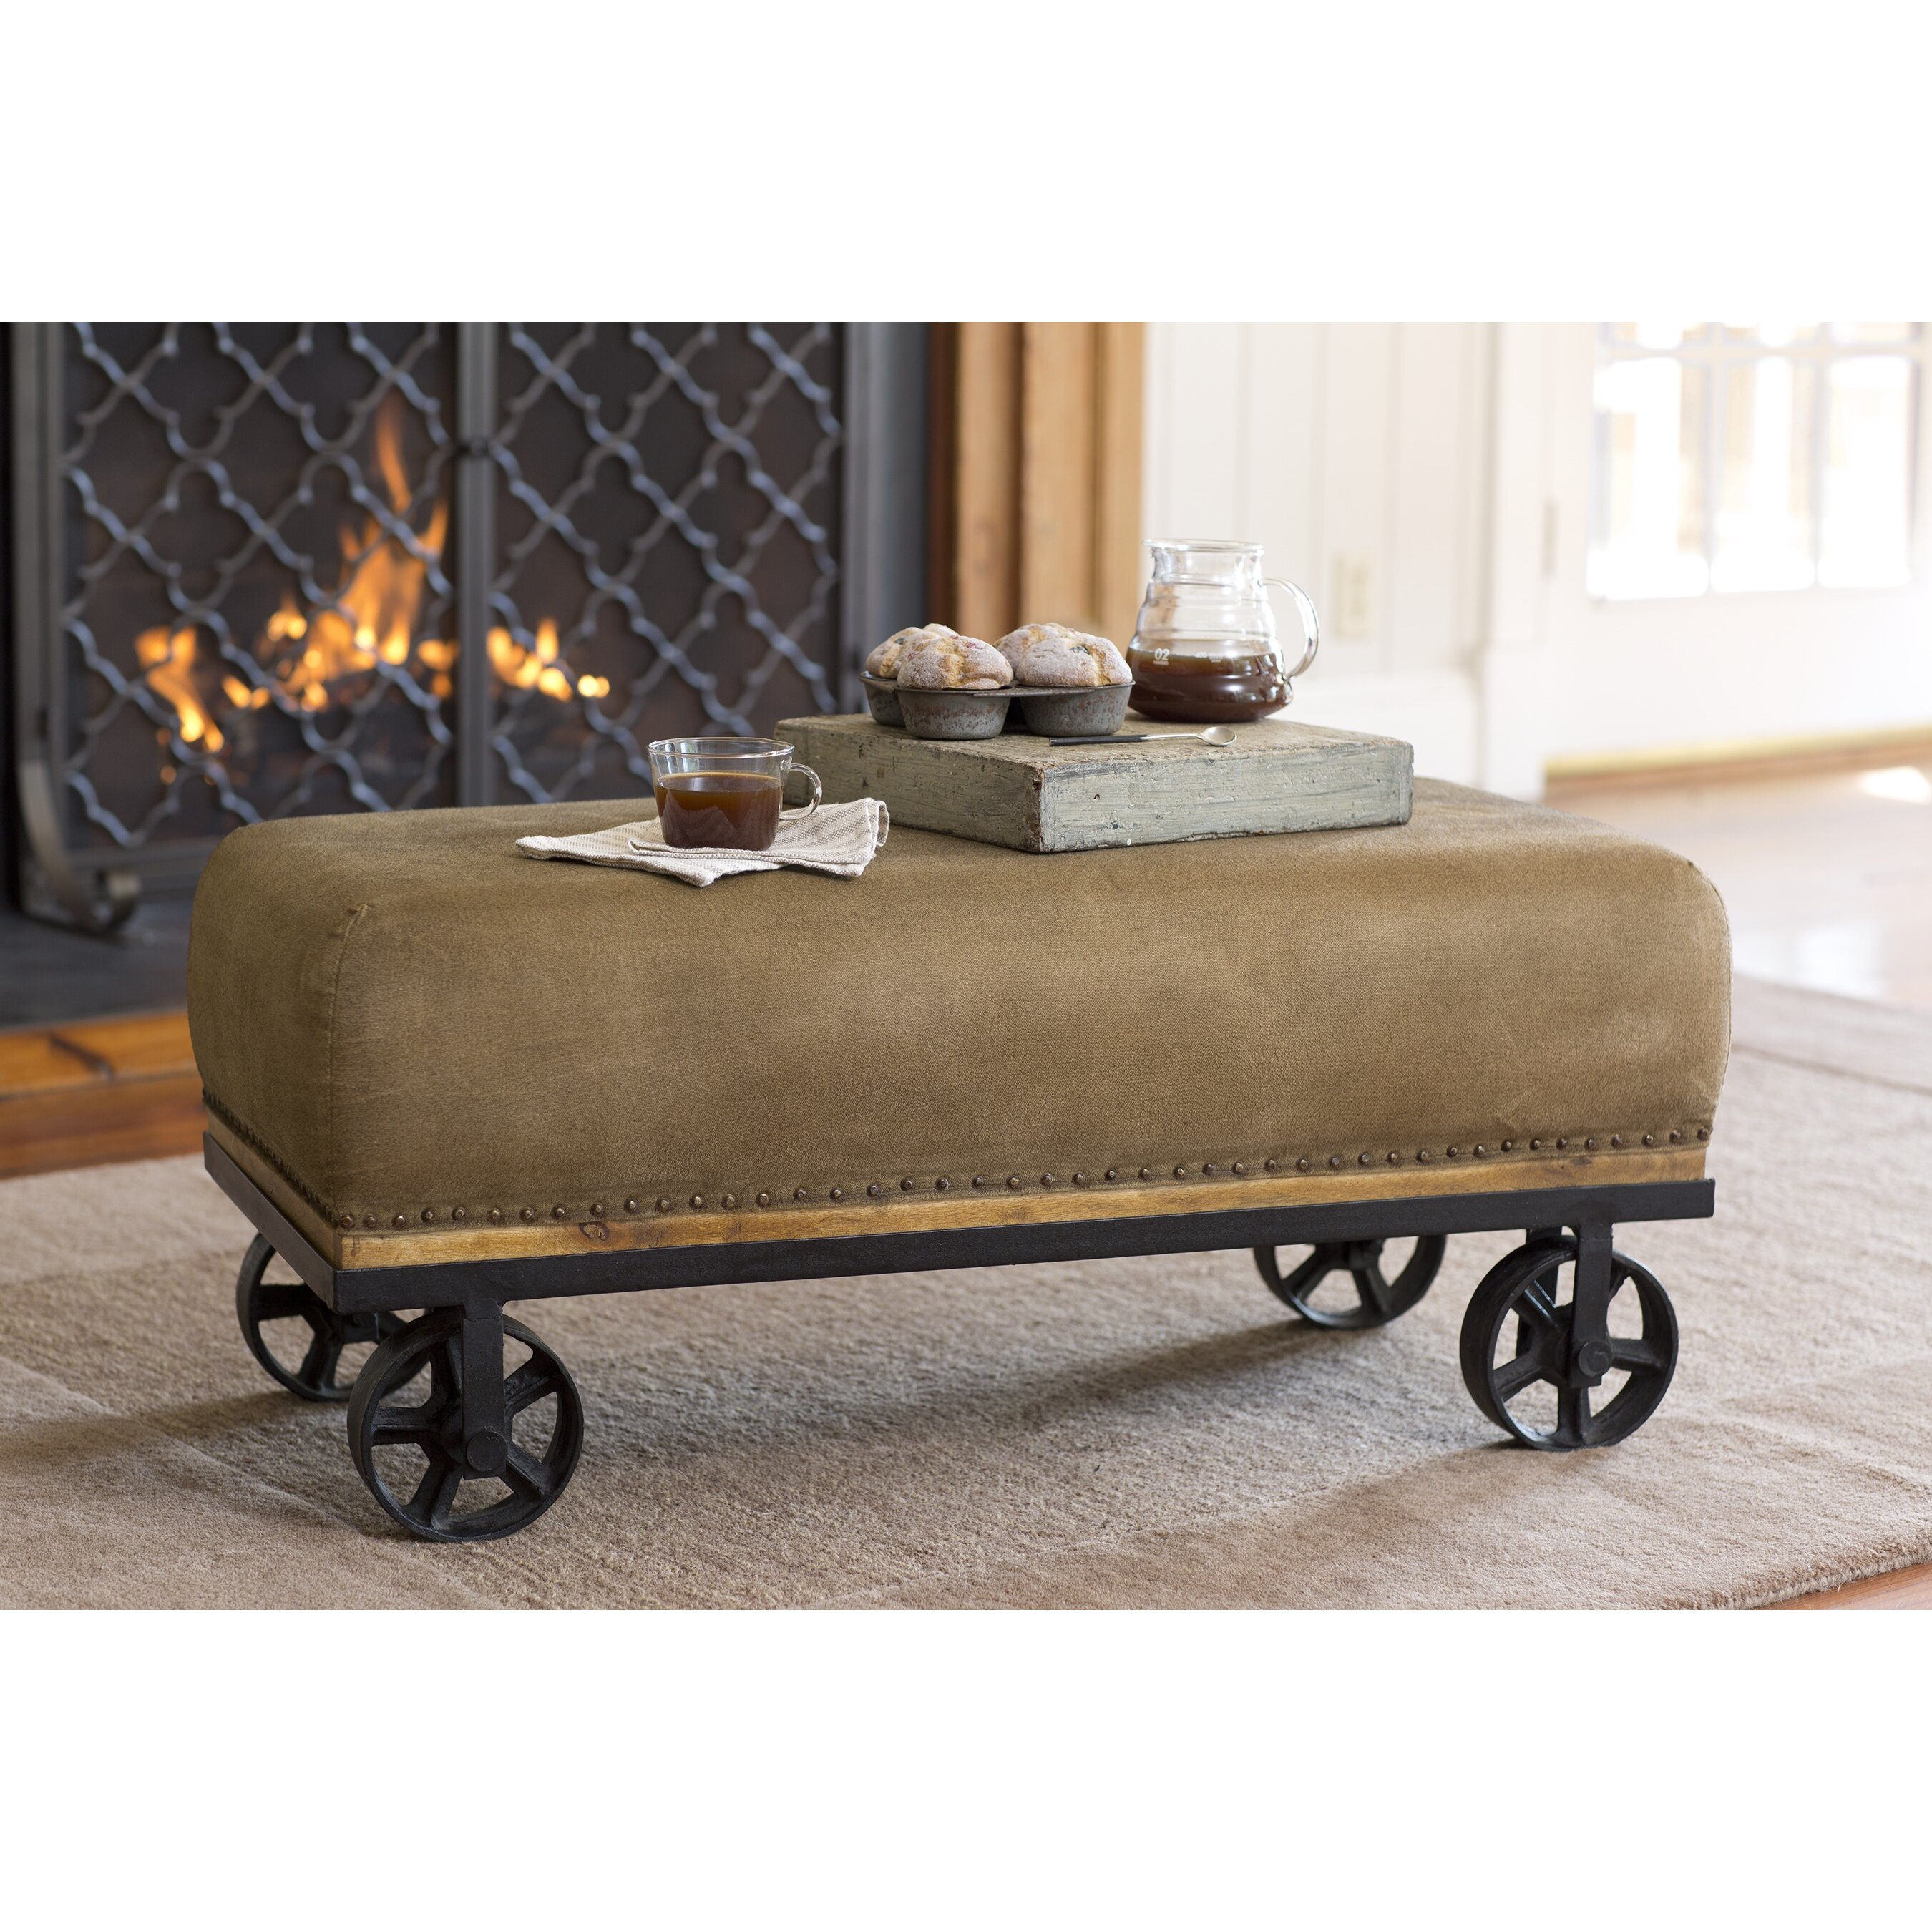 Hearth Bench: Plow & Hearth Upholstered Entryway Bench & Reviews